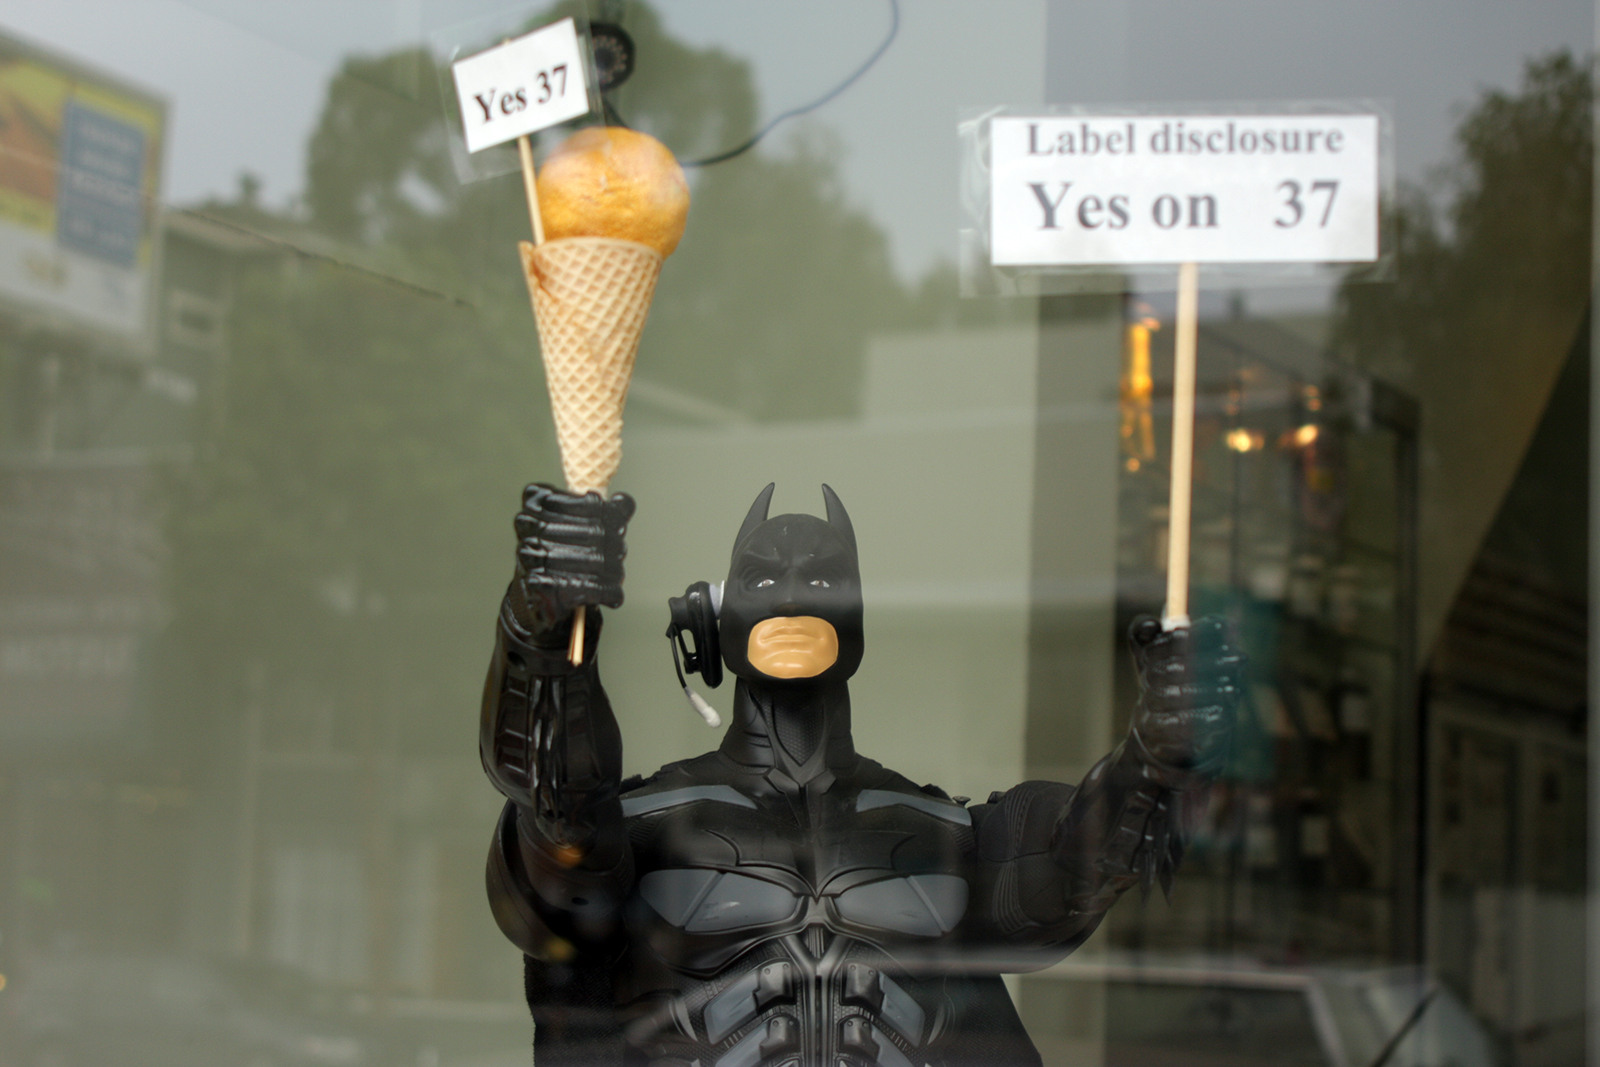 SNAP: Batman Says Yes to Proposition 37